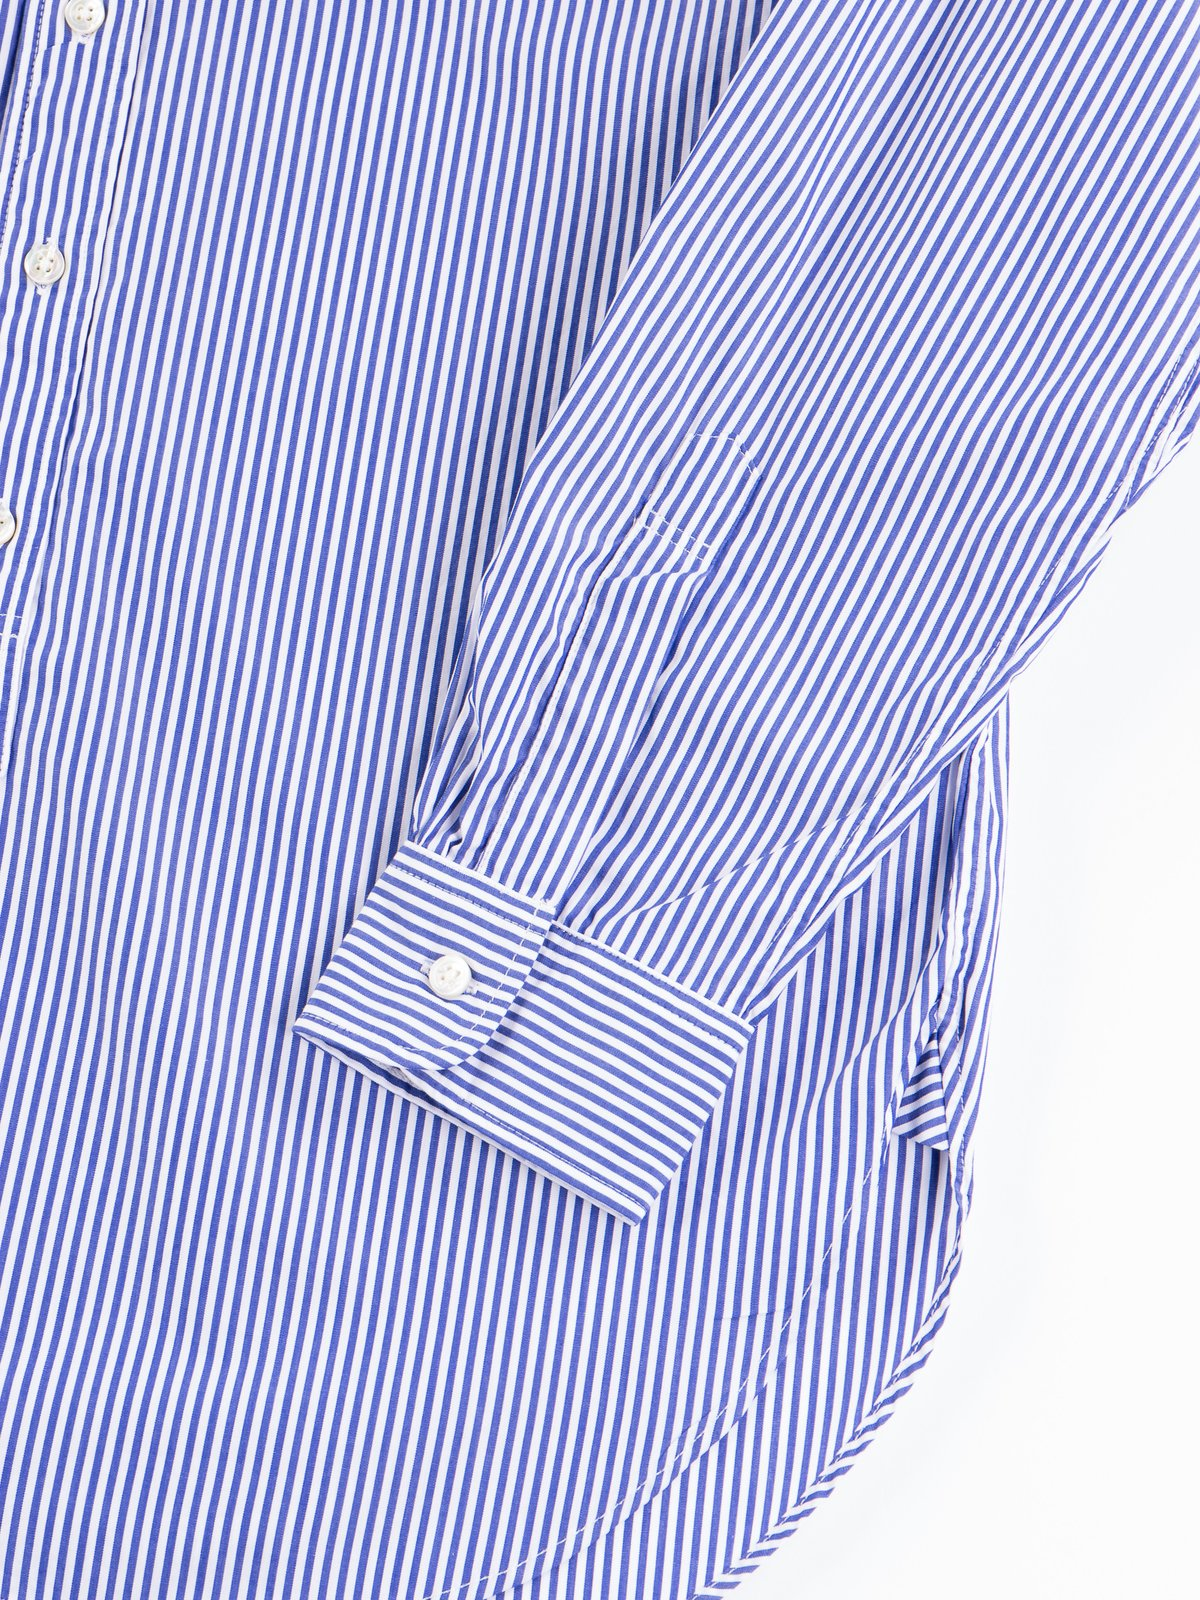 Blue/White Candy Stripe Broadcloth 19th Century BD Shirt - Image 5